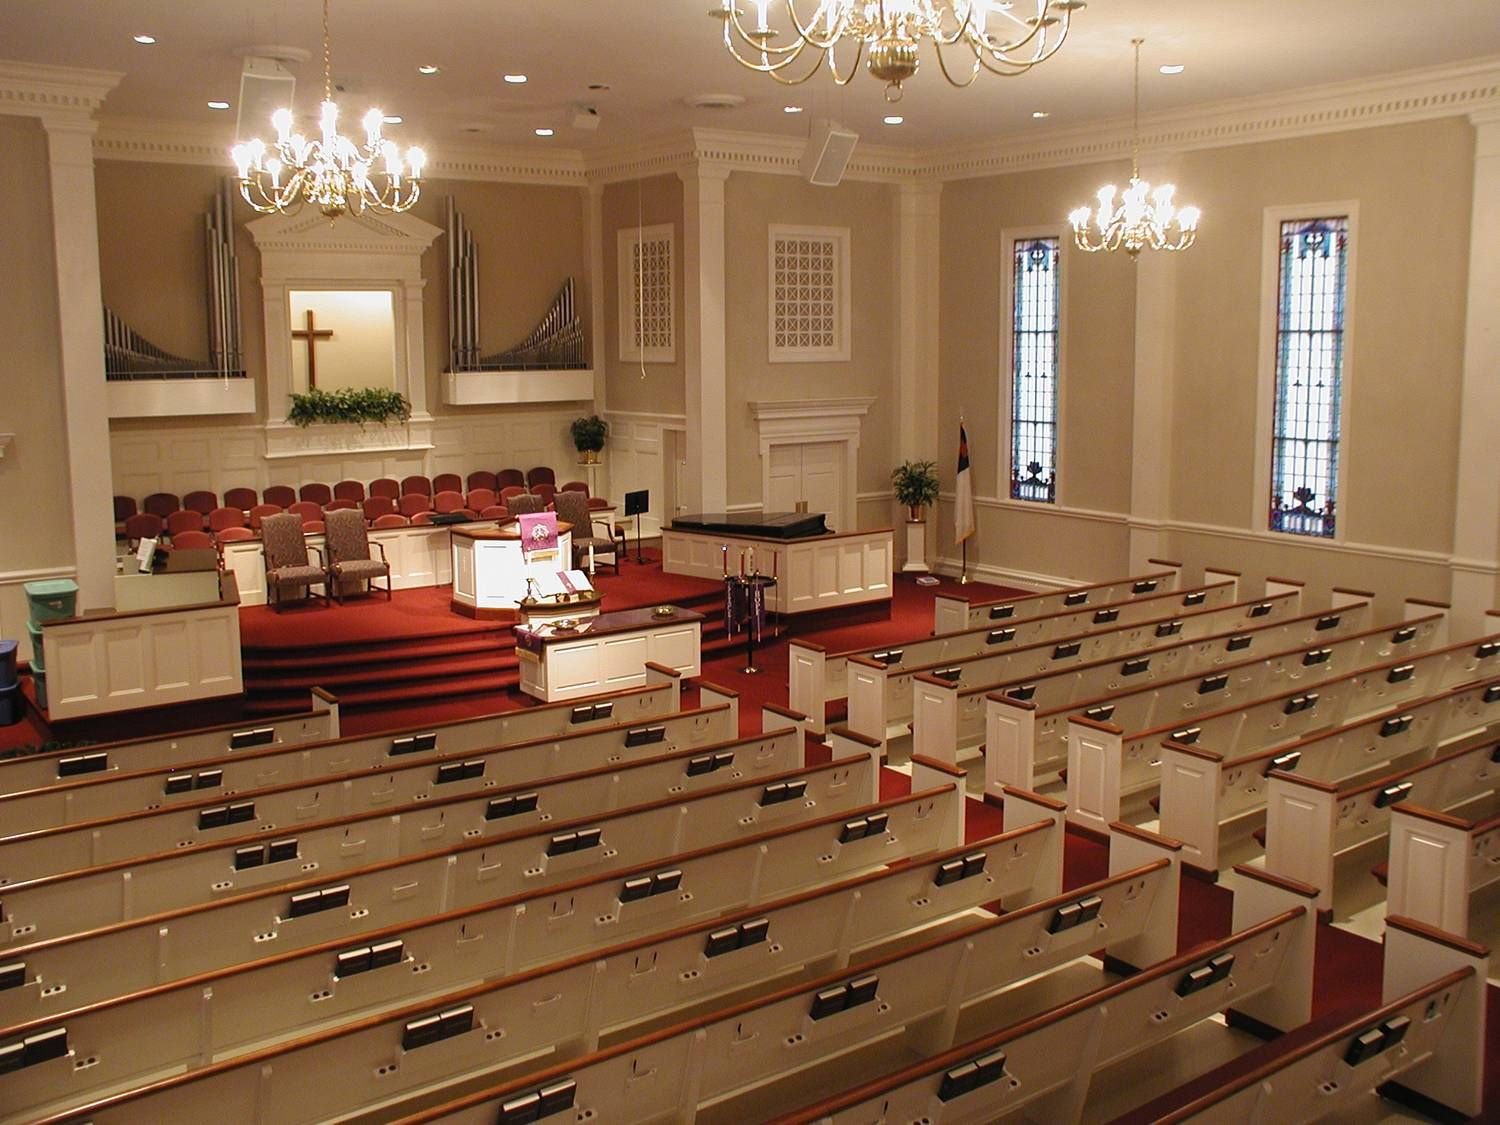 traditional church sanctuary renovations church ministrychoirchurch ideaschurch designbuilding